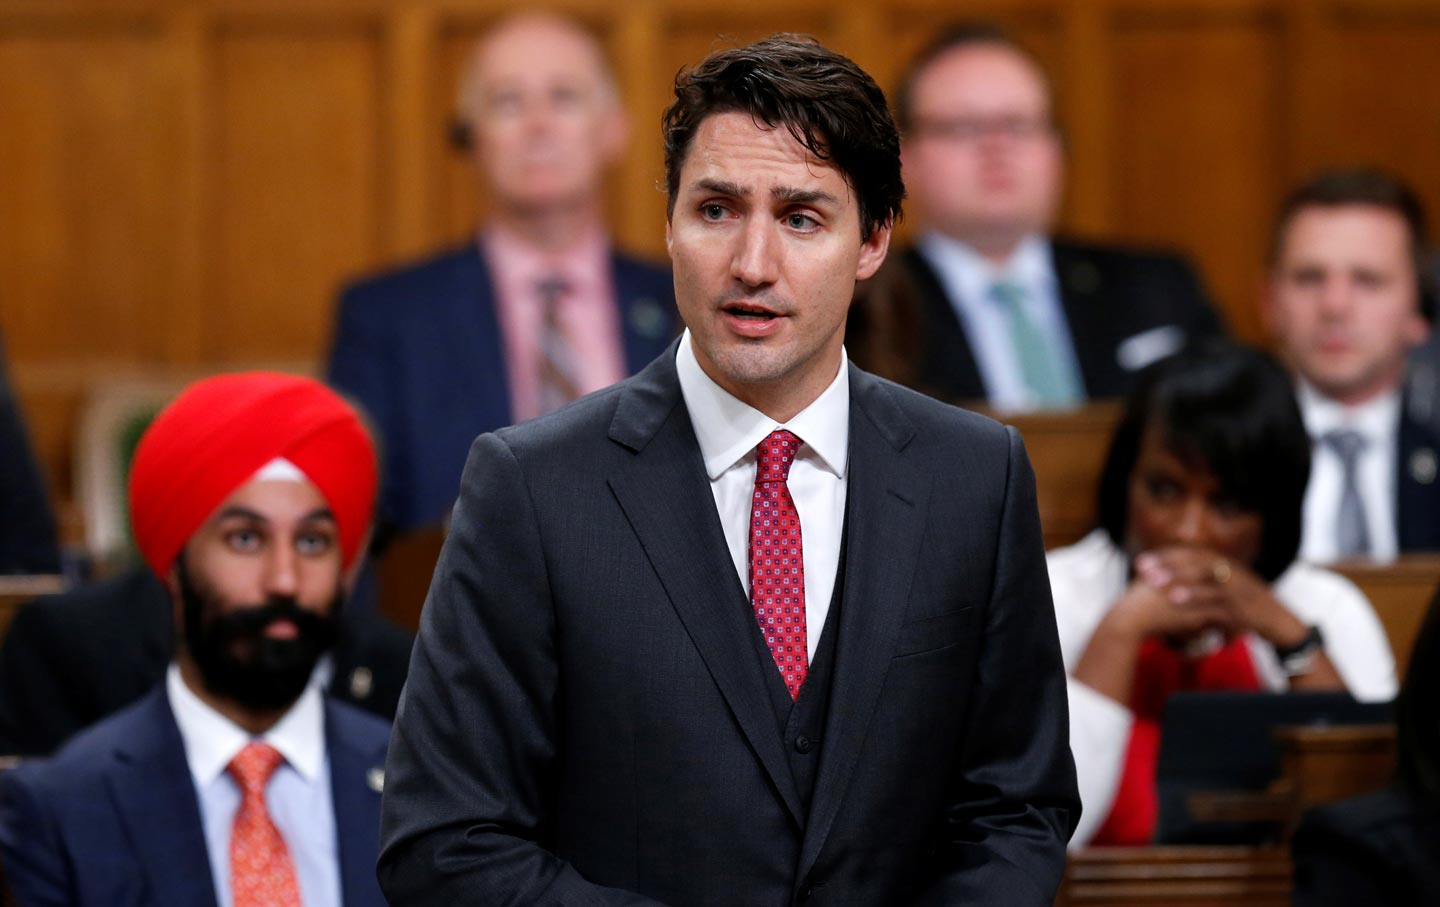 Trudeau Apology to Sikhs